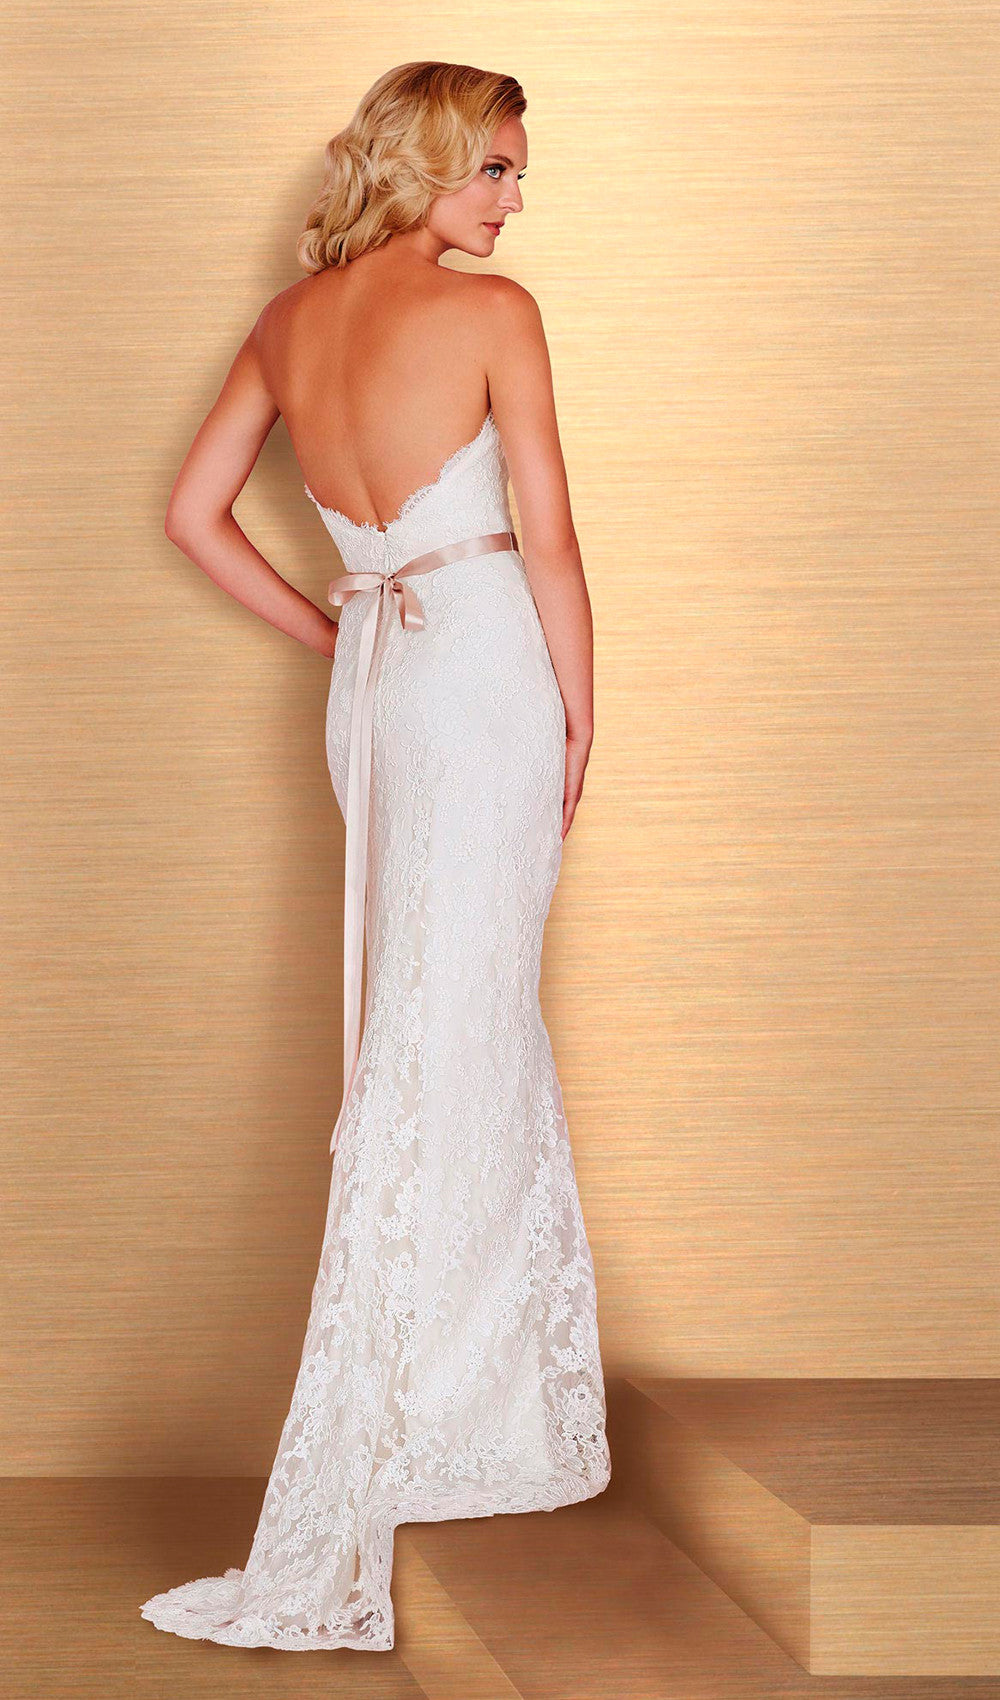 Paloma Blanca - STYLE 4666 | Schaffer's Bridal in Des Moines, Iowa and Scottsdale, Arizona